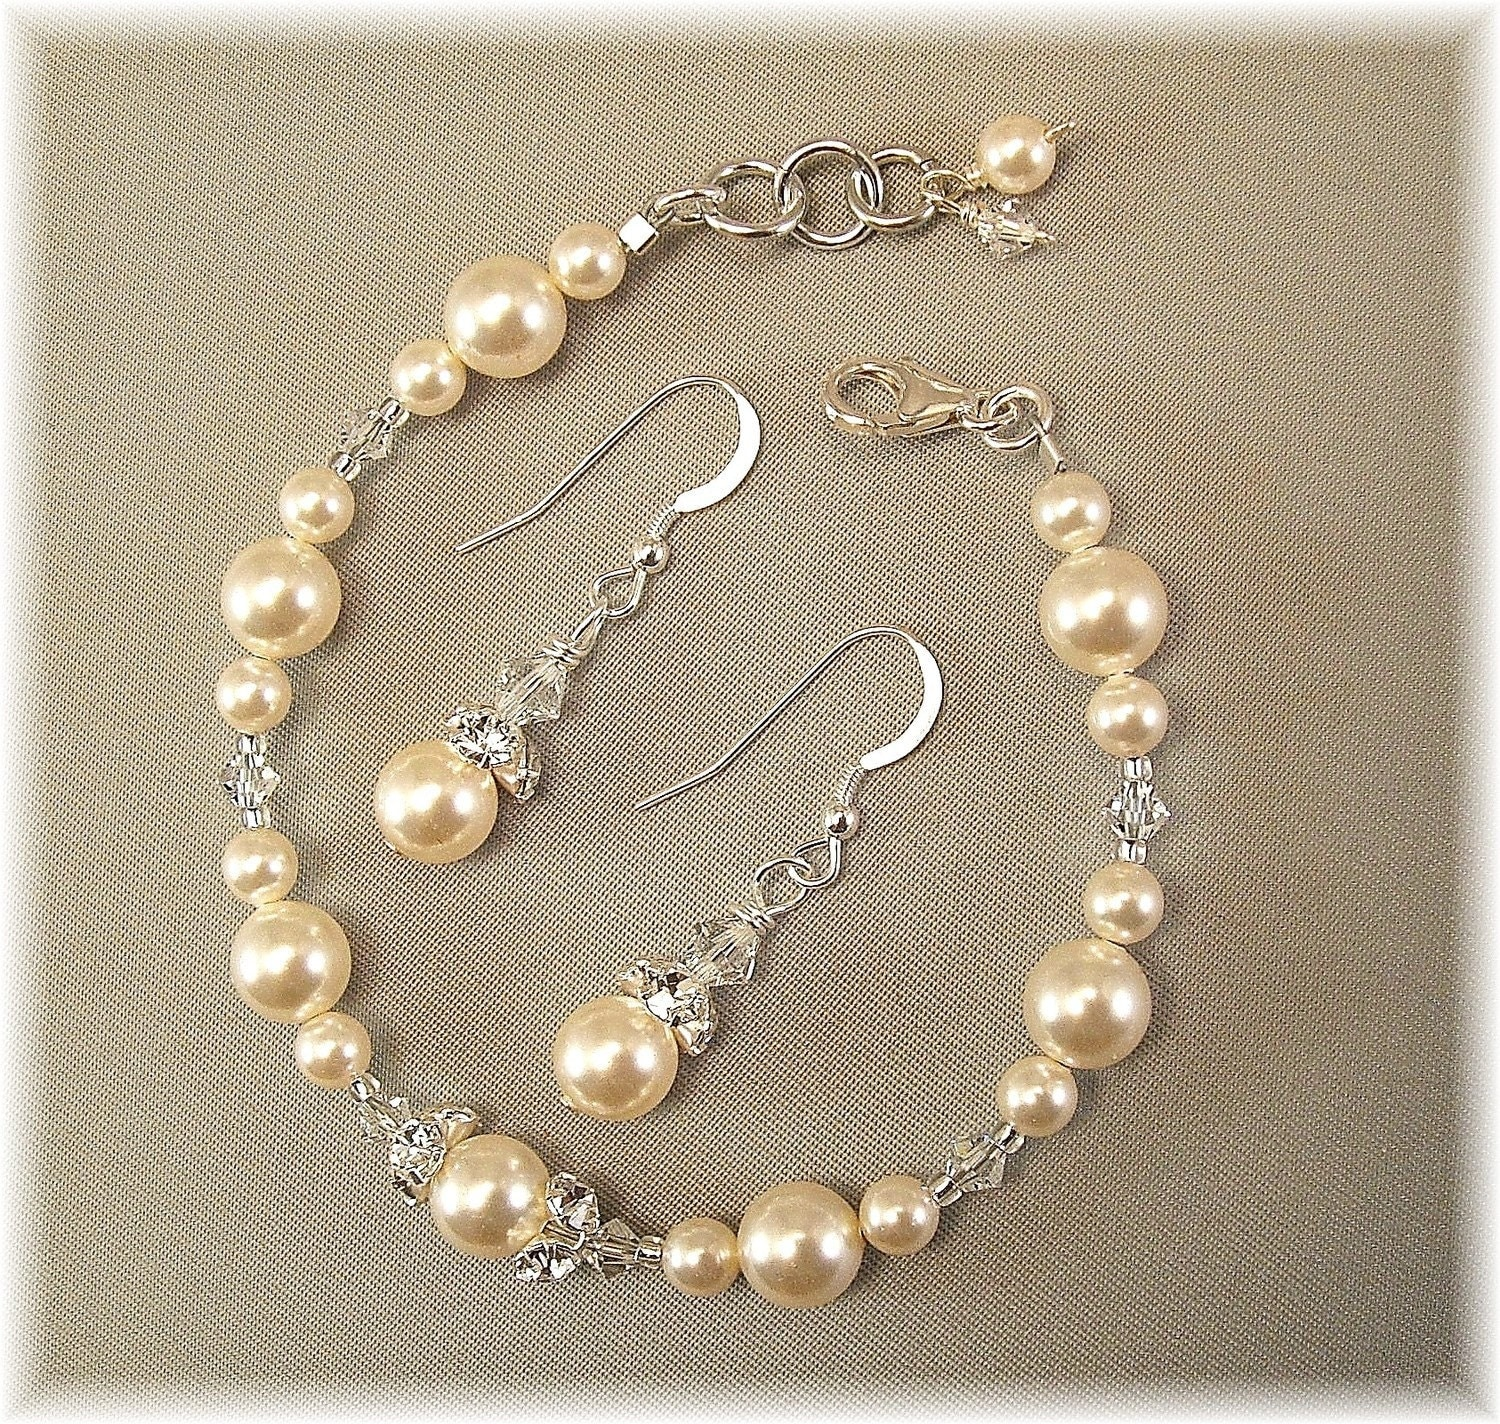 Ivory Pearl and Crystal Bracelet and Earring Sets by Handwired from etsy.com